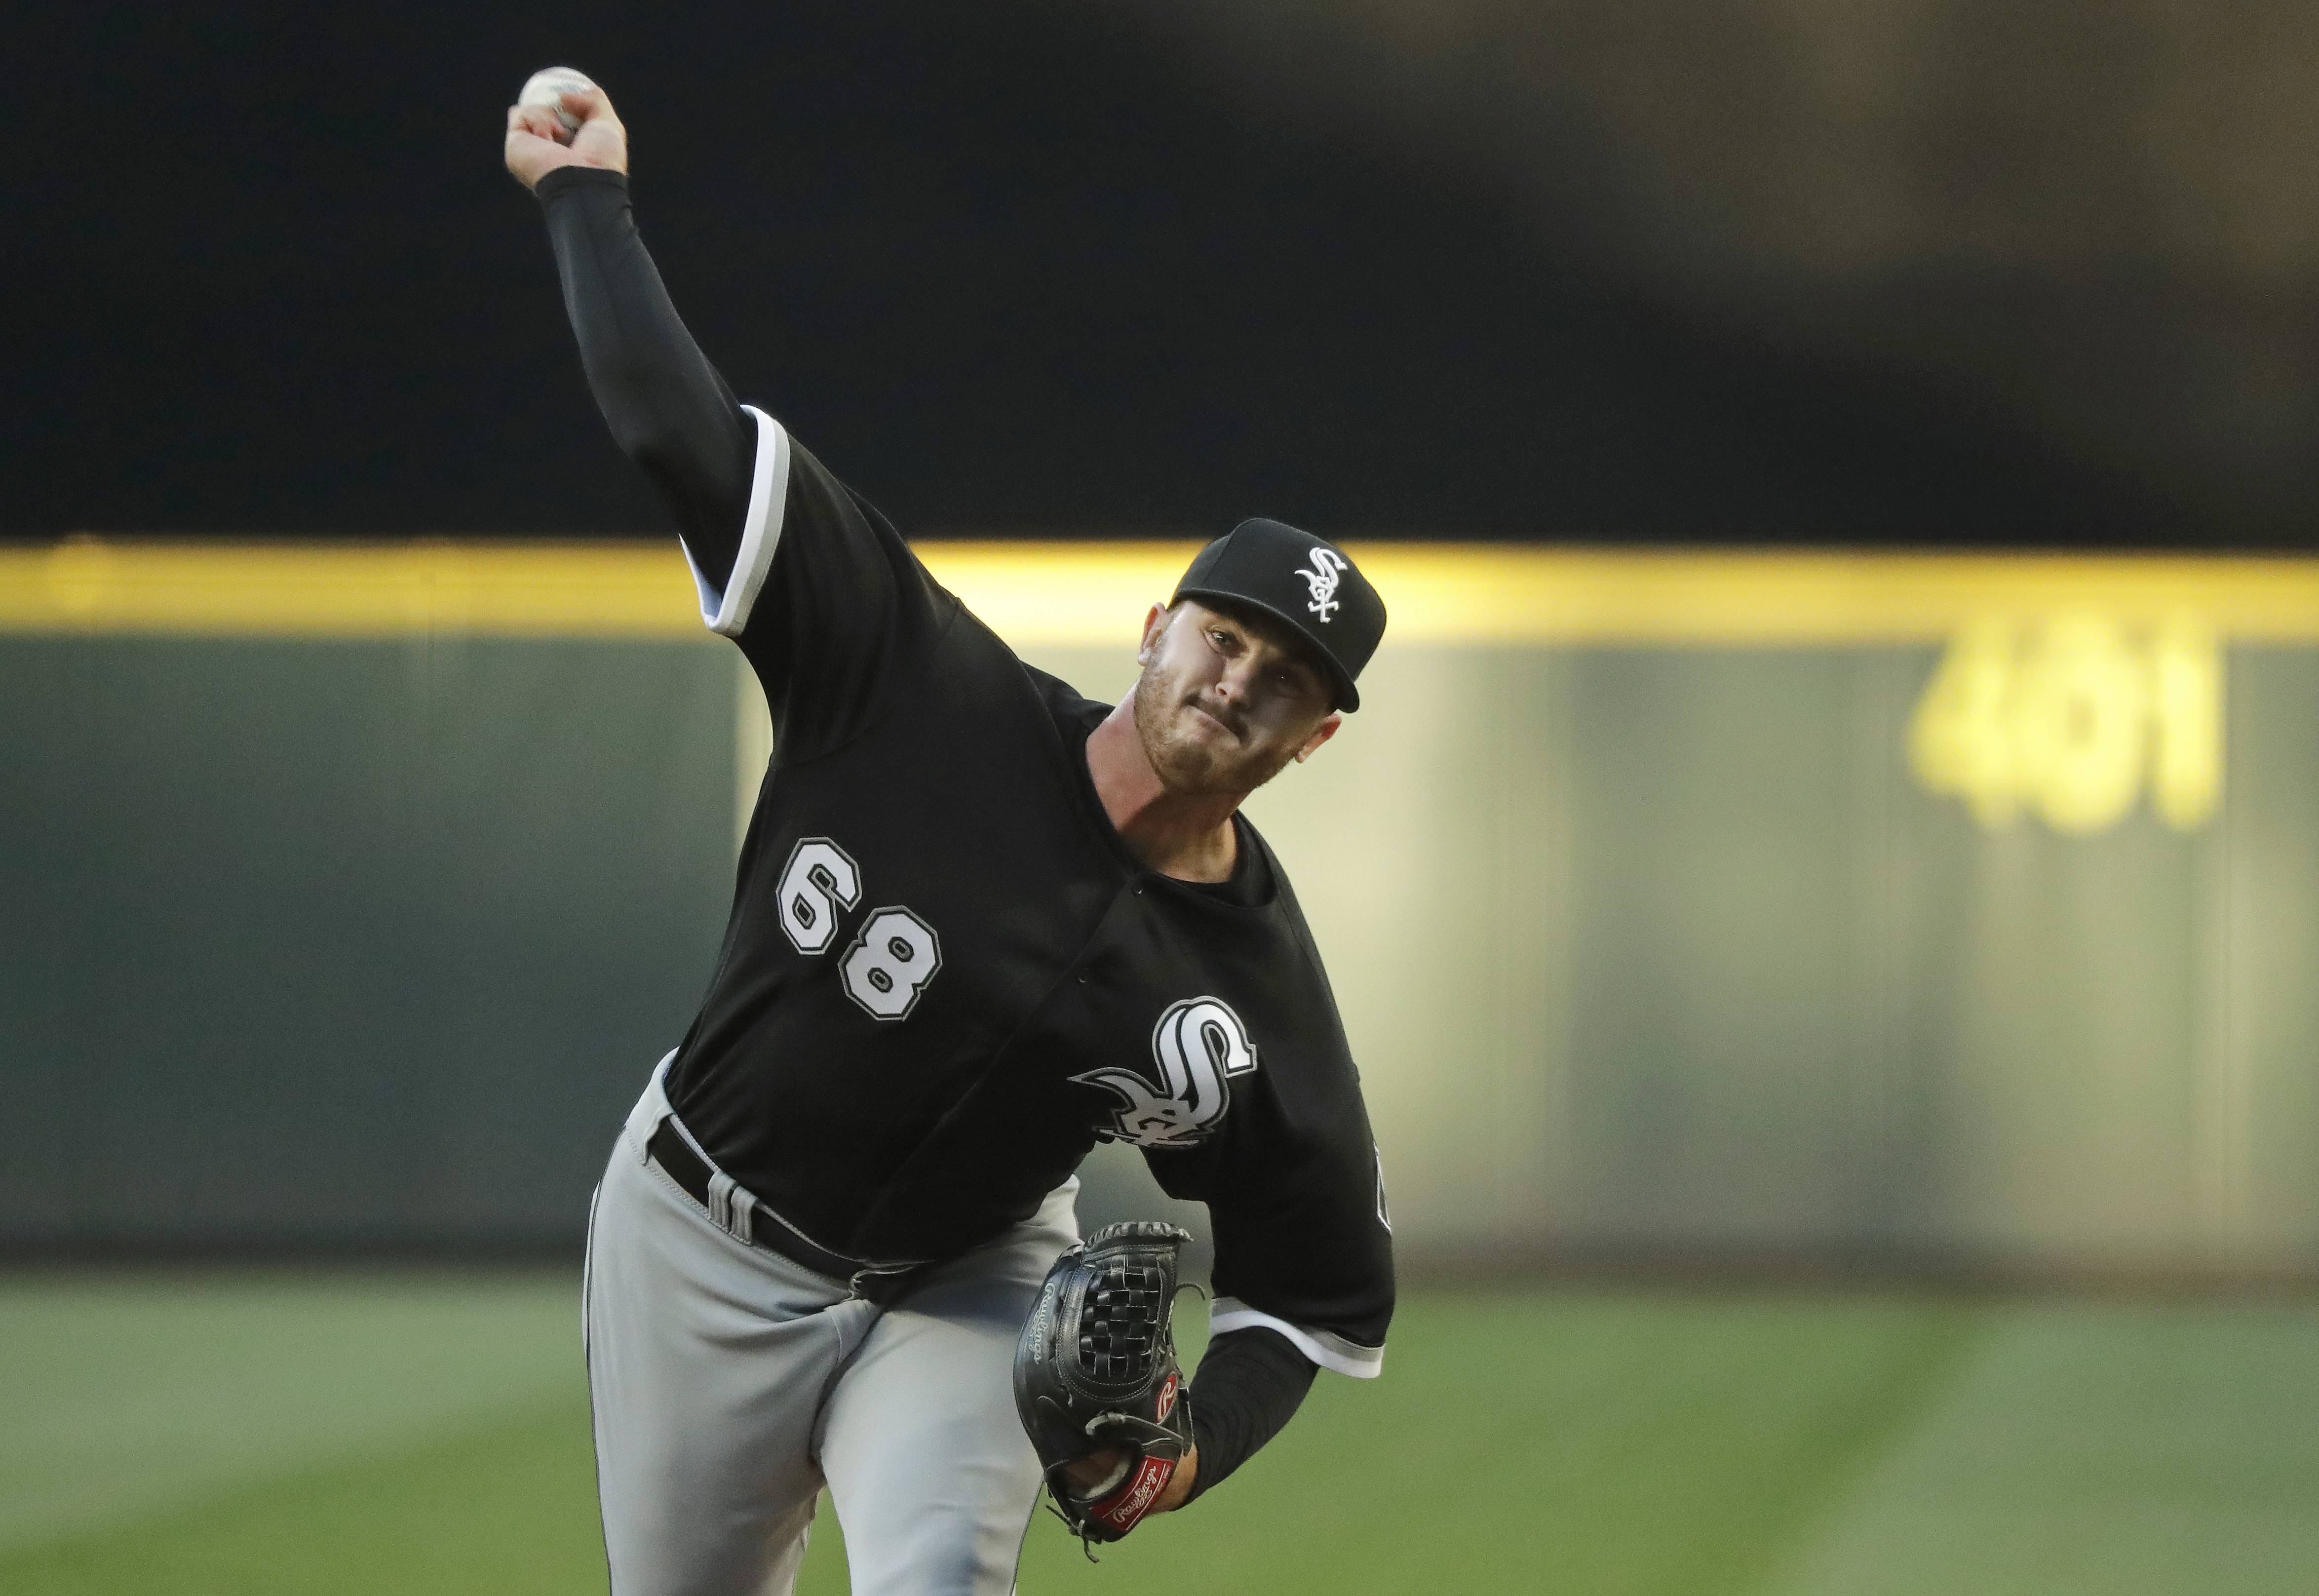 Chicago White Sox starting pitcher Dylan Covey throws against the Seattle Mariners during the third inning of a baseball game, Saturday, July 21, 2018, in Seattle.